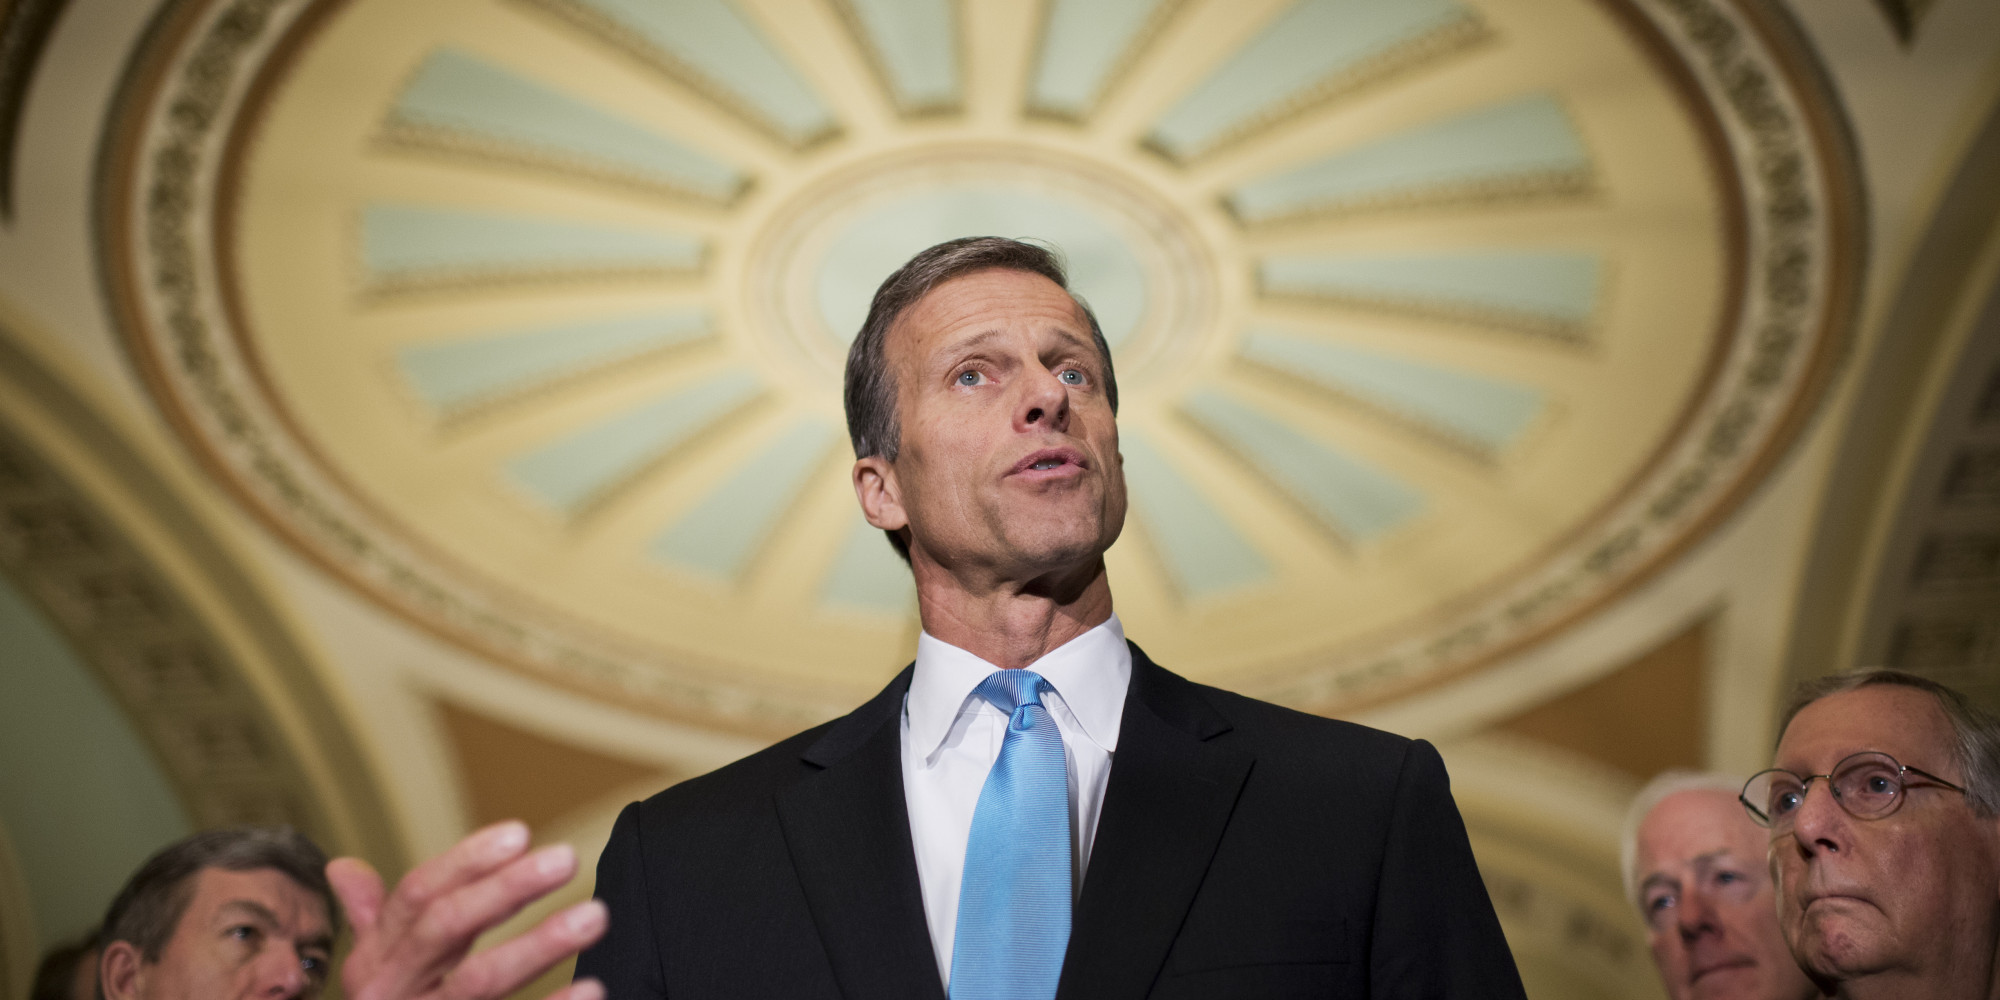 UNITED STATES - FEBRUARY 25: Sen. John Thune, R-S.D., talks with the media after the senate luncheons in the Capitol. Sens. Roy Blunt, R-Mo., left, Senate Minority Leader Mitch McConnell, R-Ky., far right, and John Cornyn, R-Texas., also appear. (Photo By Tom Williams/CQ Roll Call)